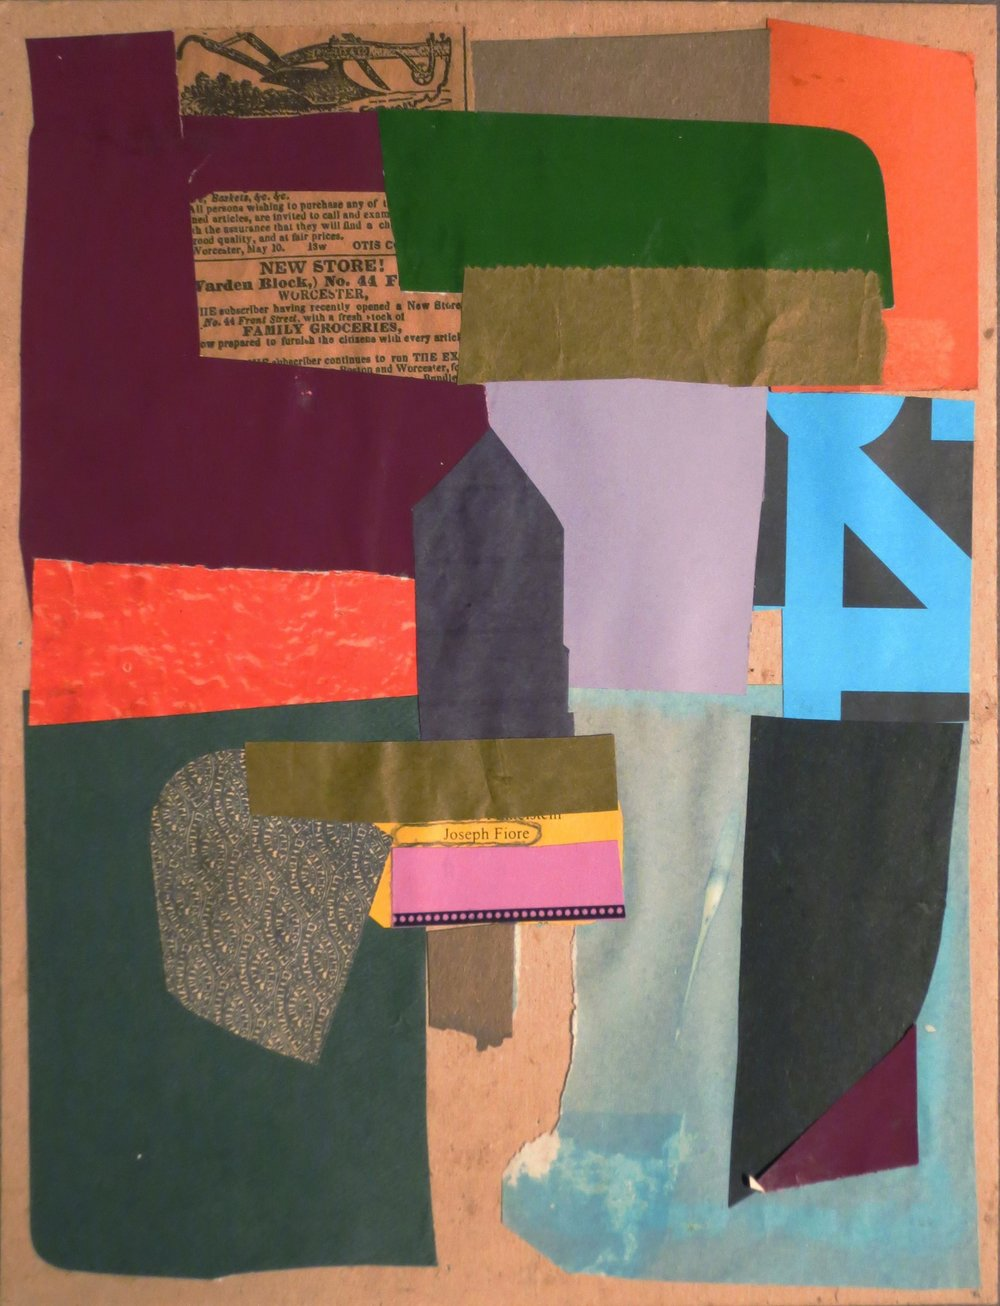 Abstract collage with purple, green, blue, pink, black